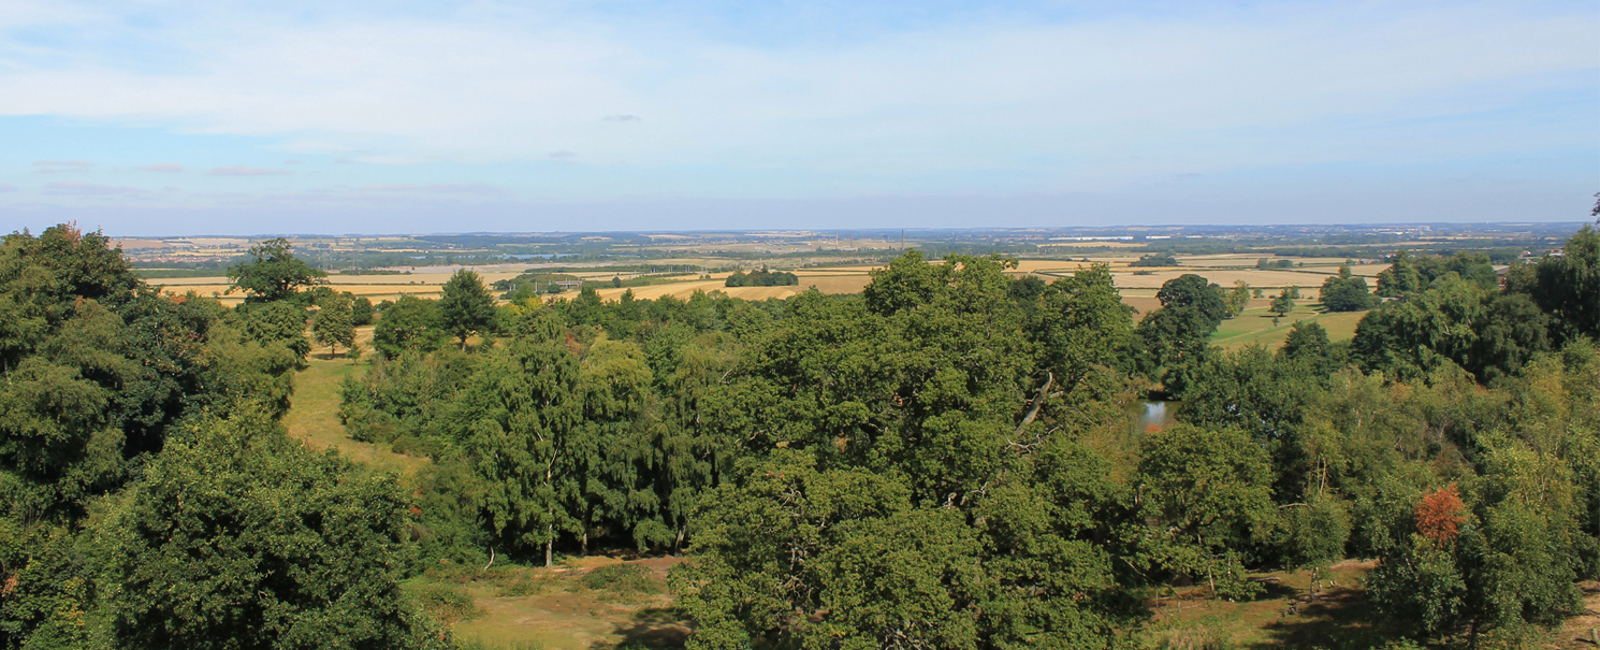 View from Ampthill Great Park